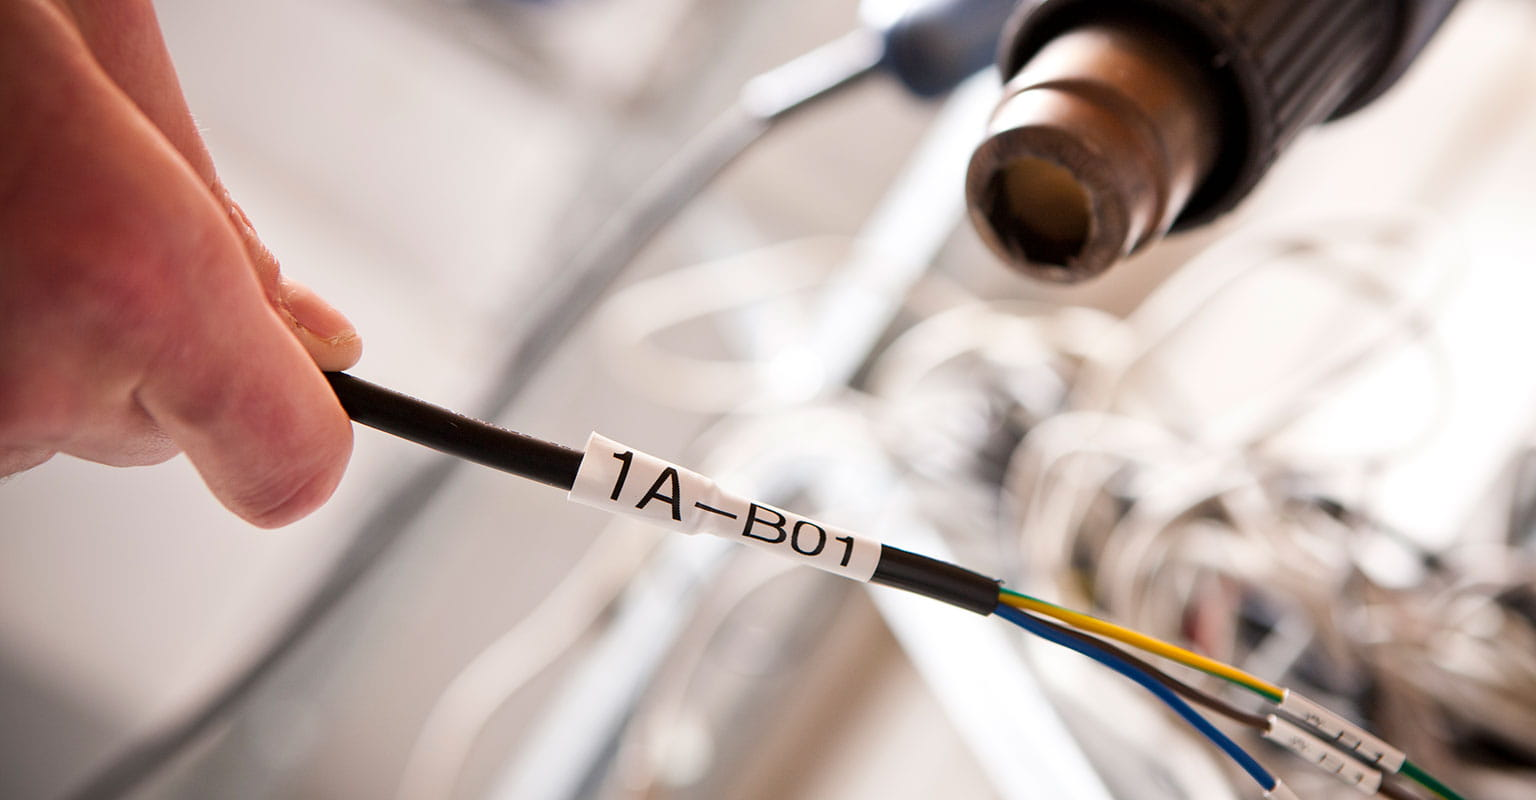 Brother heat shrink tube applied around a cable